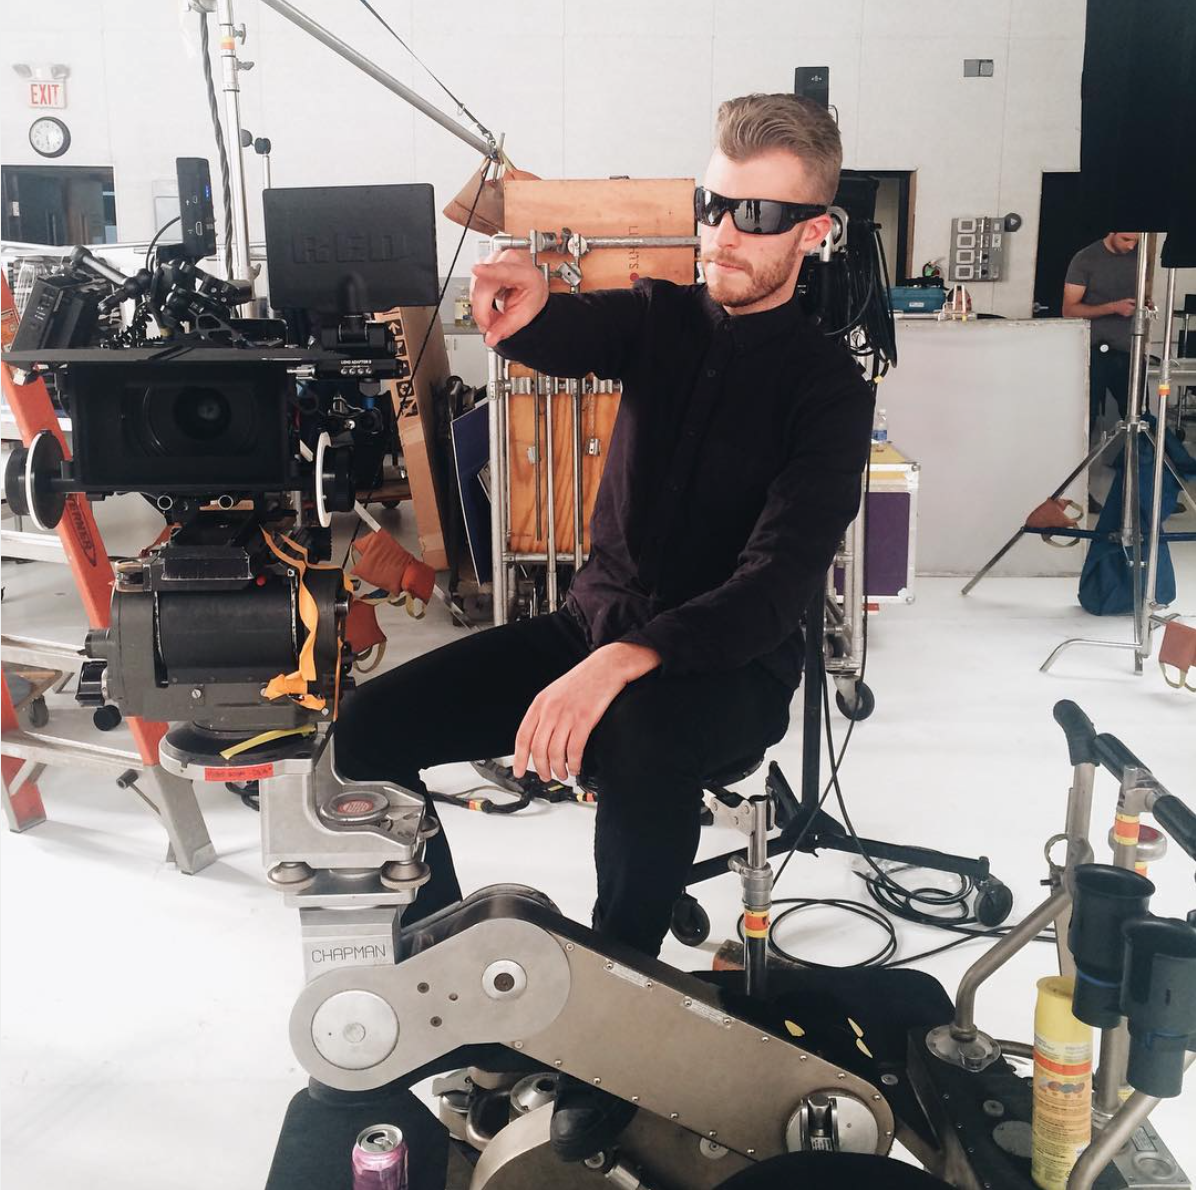 Kevin in auteur mode at his day job as a director of commercials.